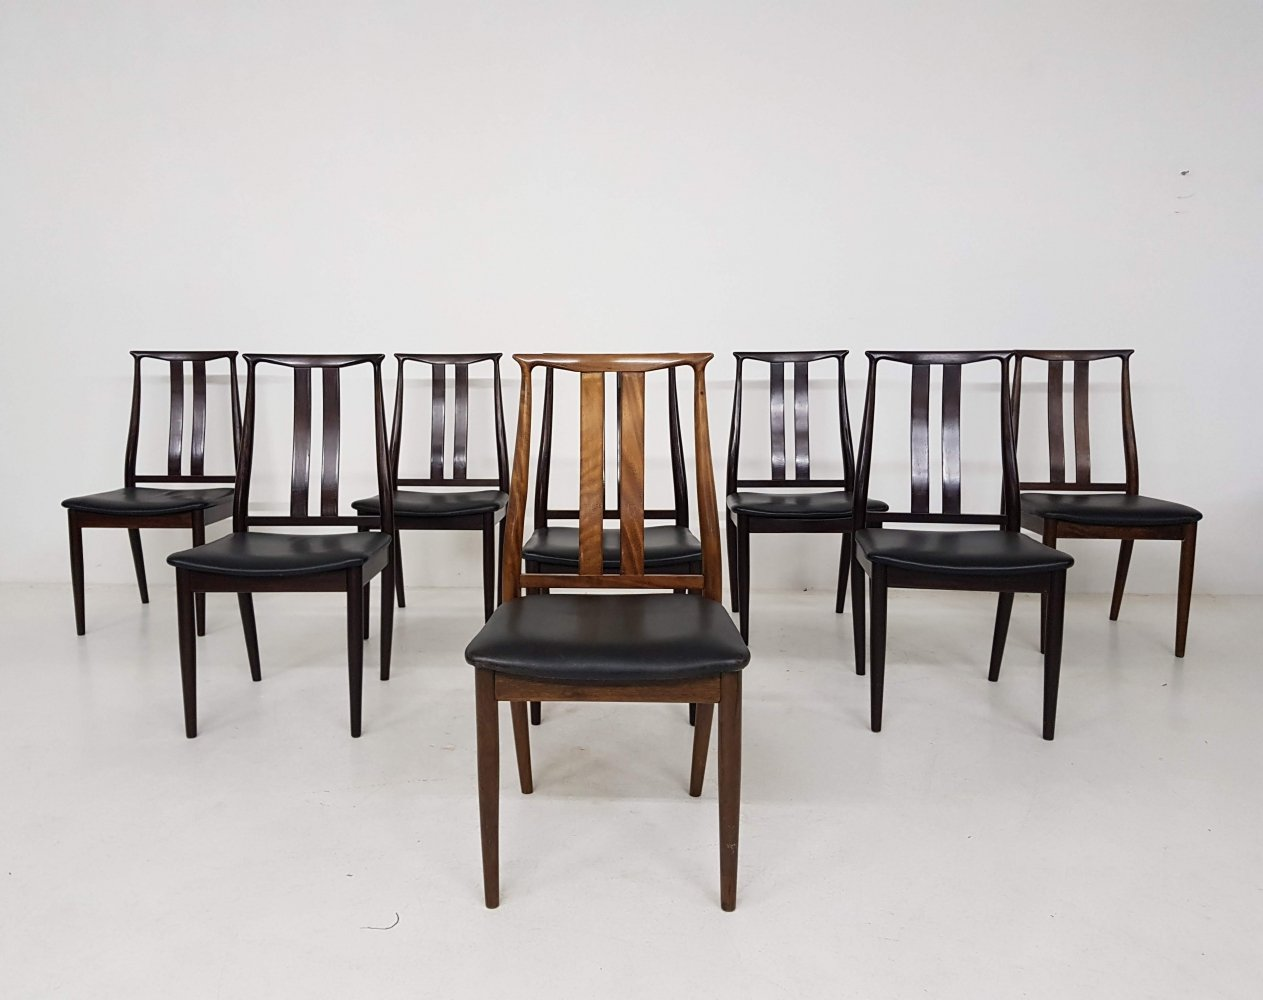 Set of 8 Danish dining chairs with black leather upholstery, 1960s